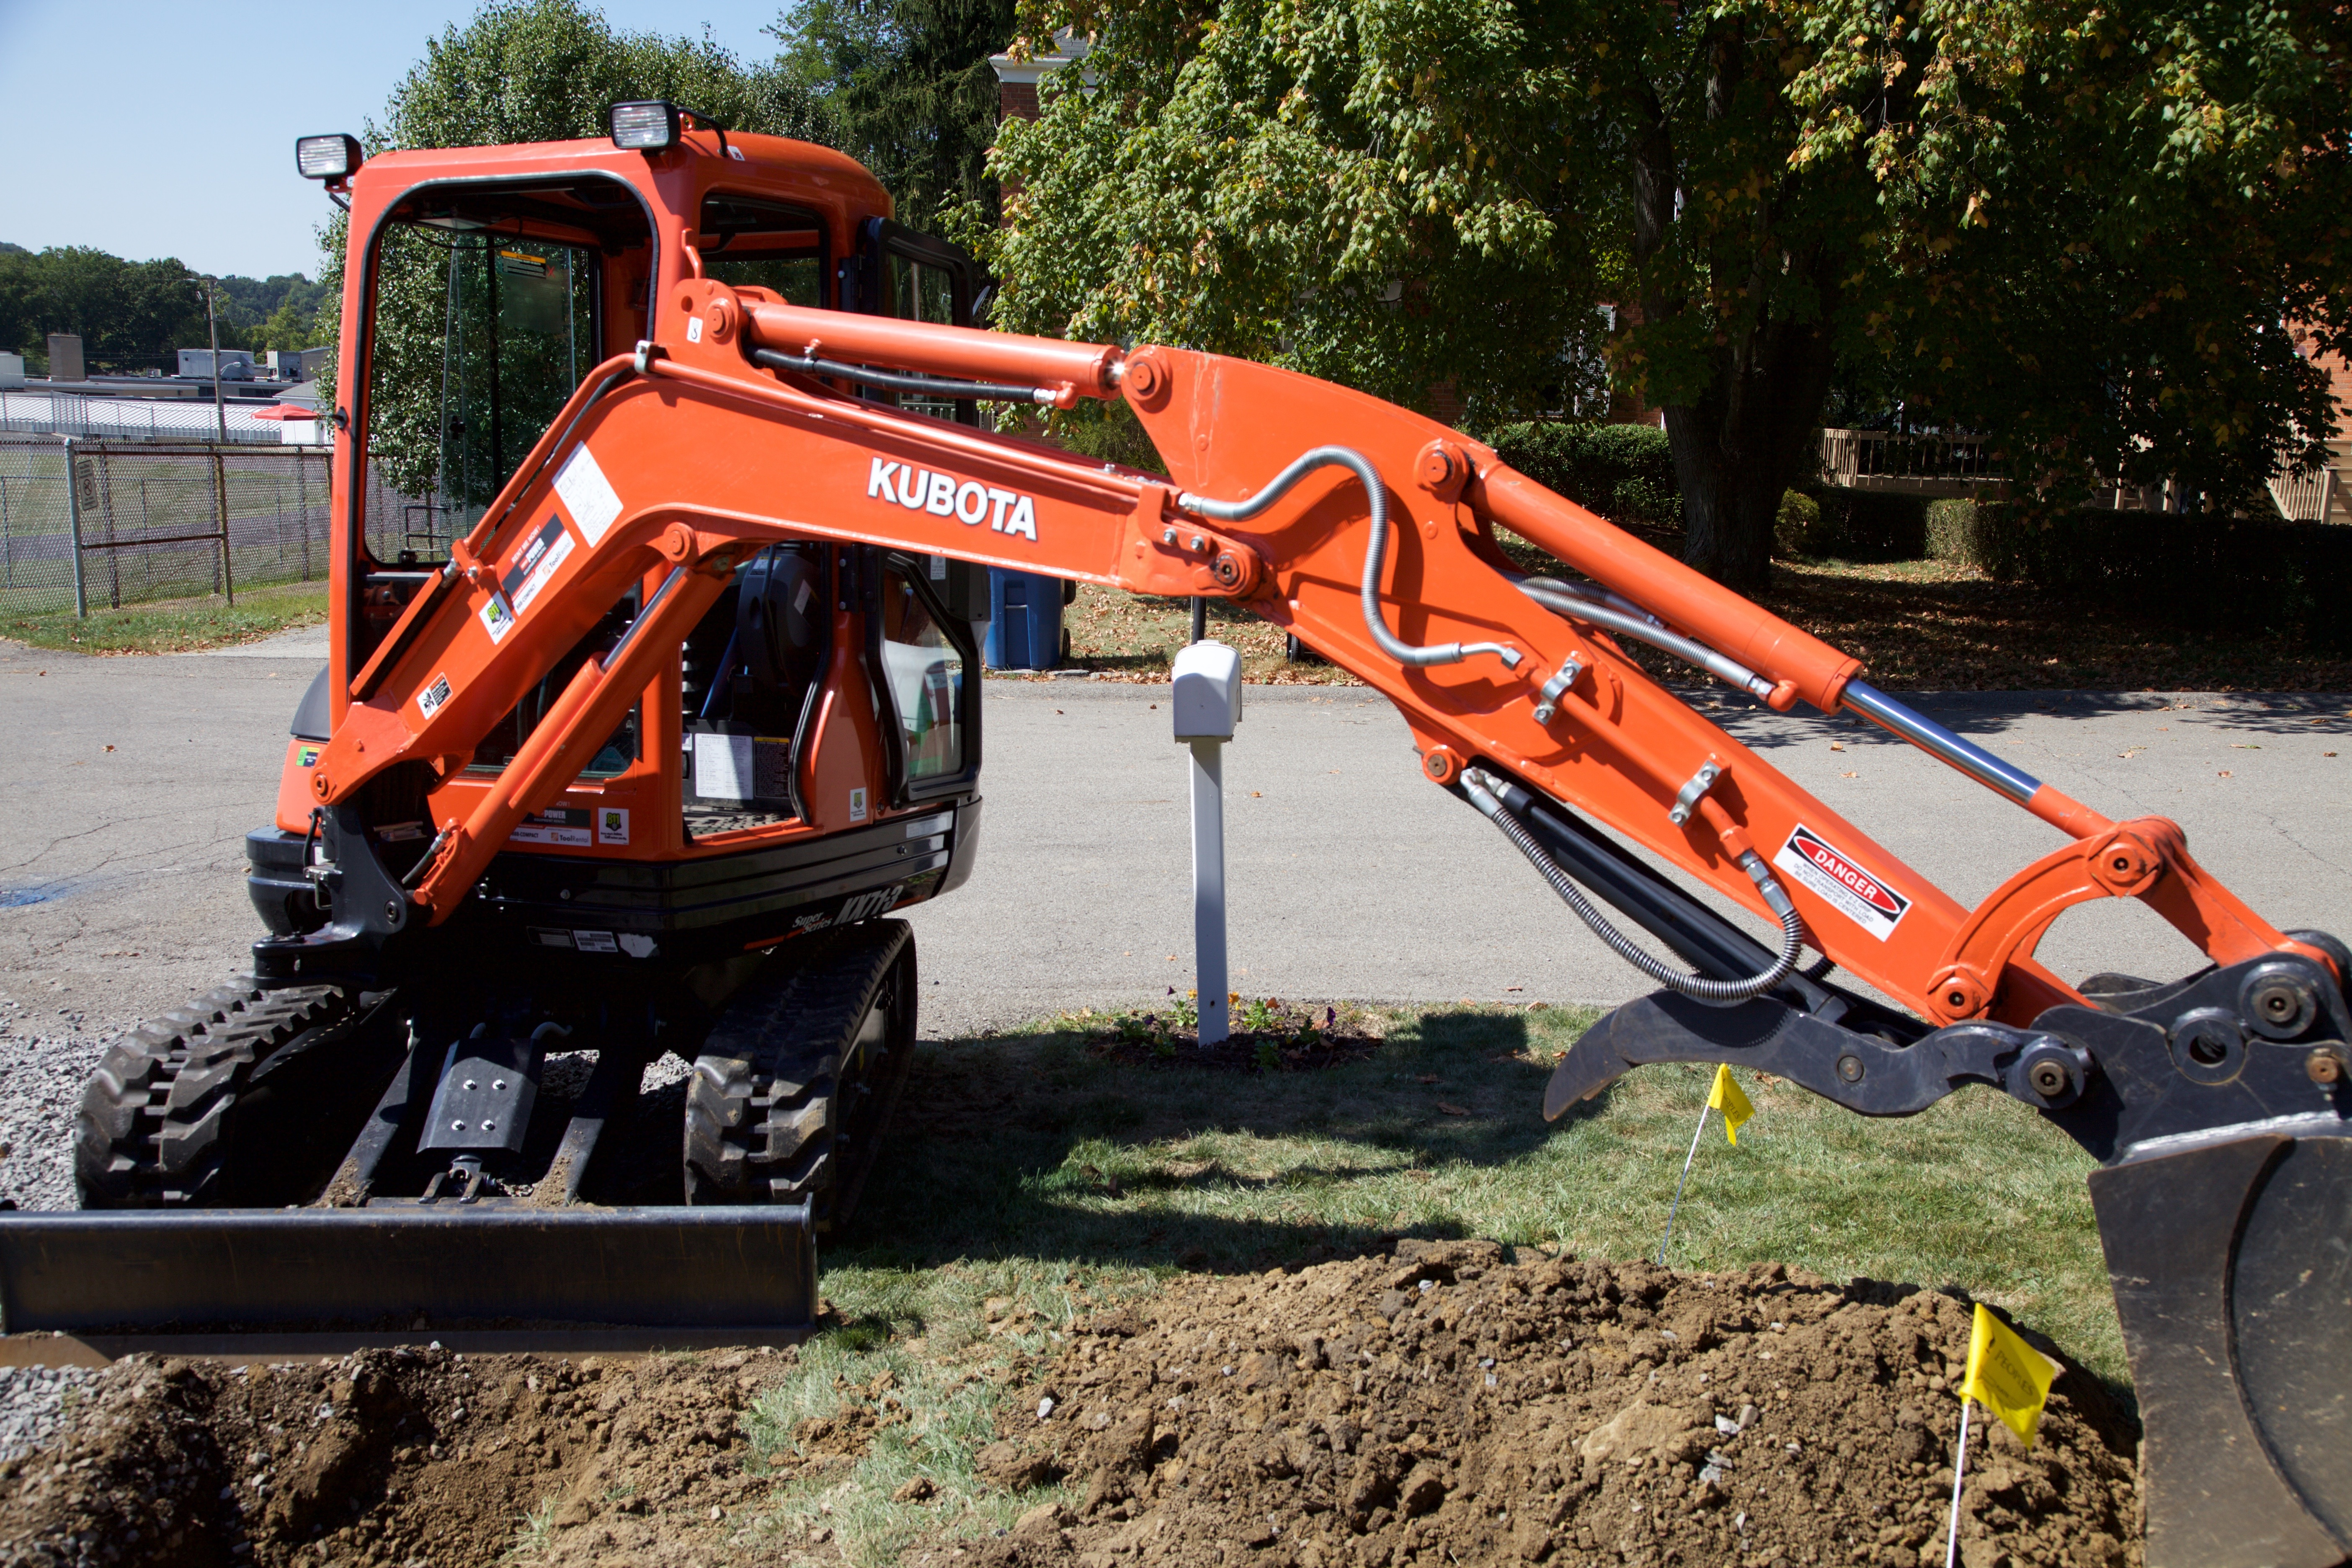 Kubota Mini Excavator In Action_IMG_1012.jpg